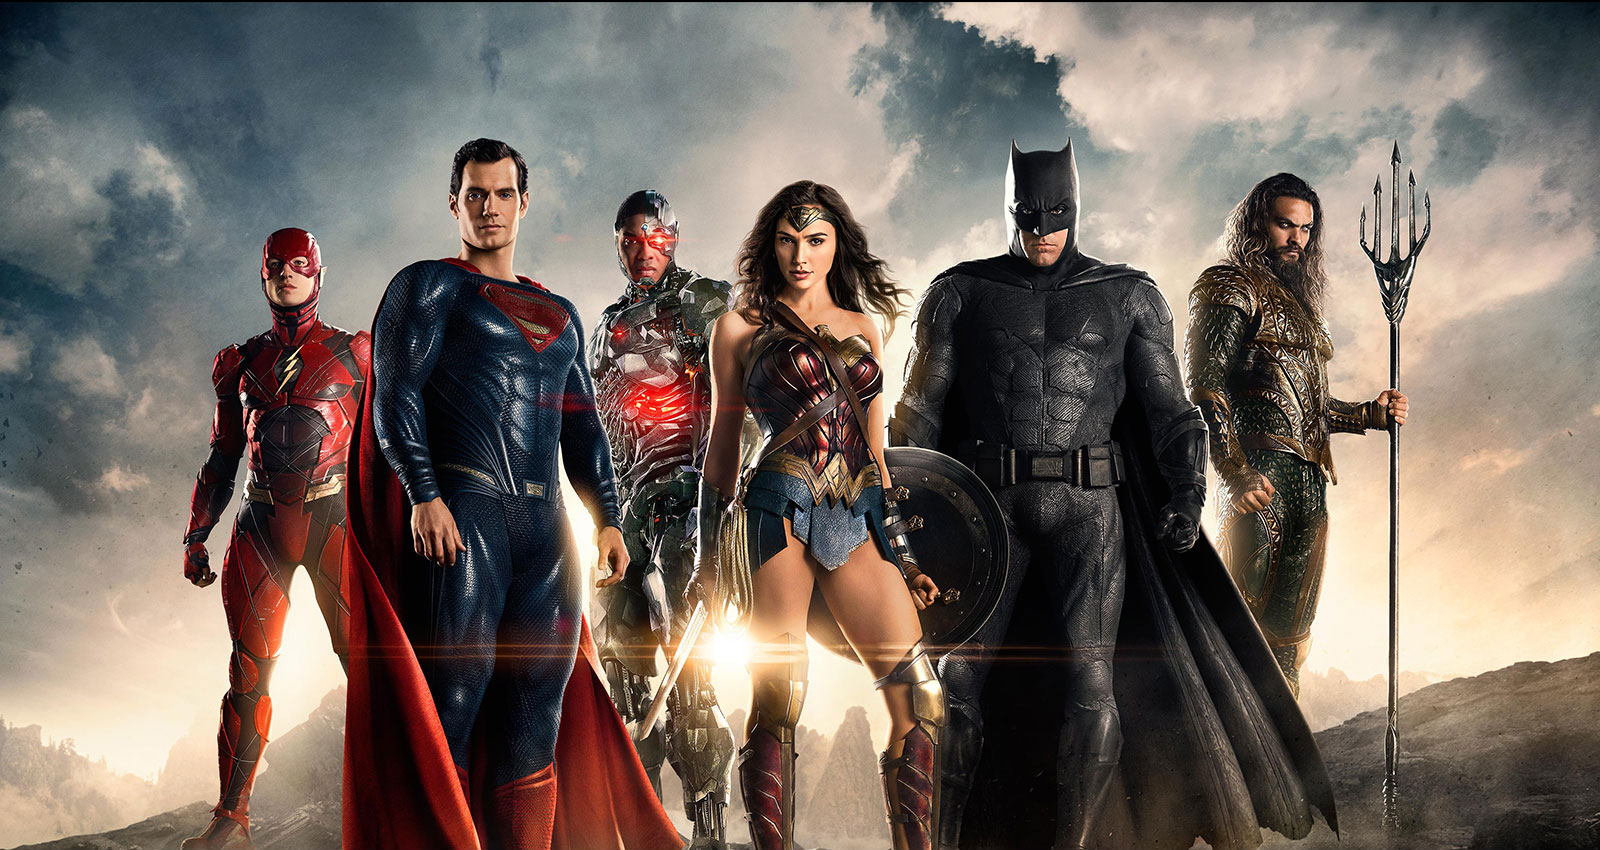 Justice League Review (WARNING: spoilers)